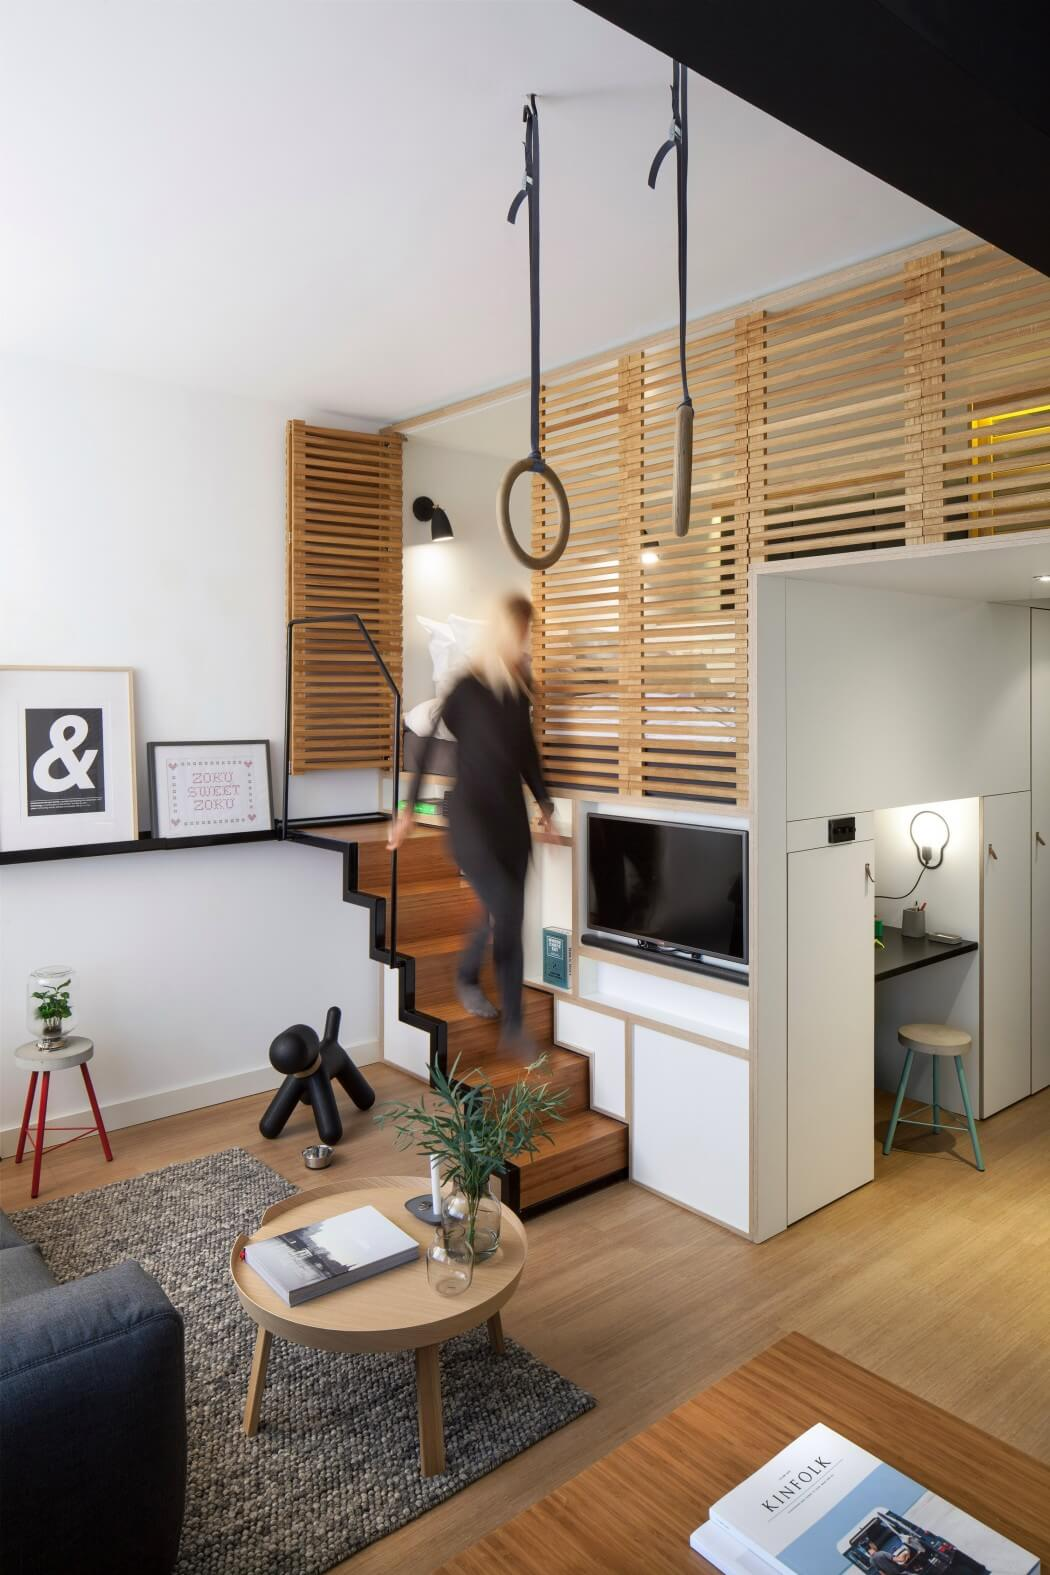 Design Dilemma: An Excellent Micro Apartment Design